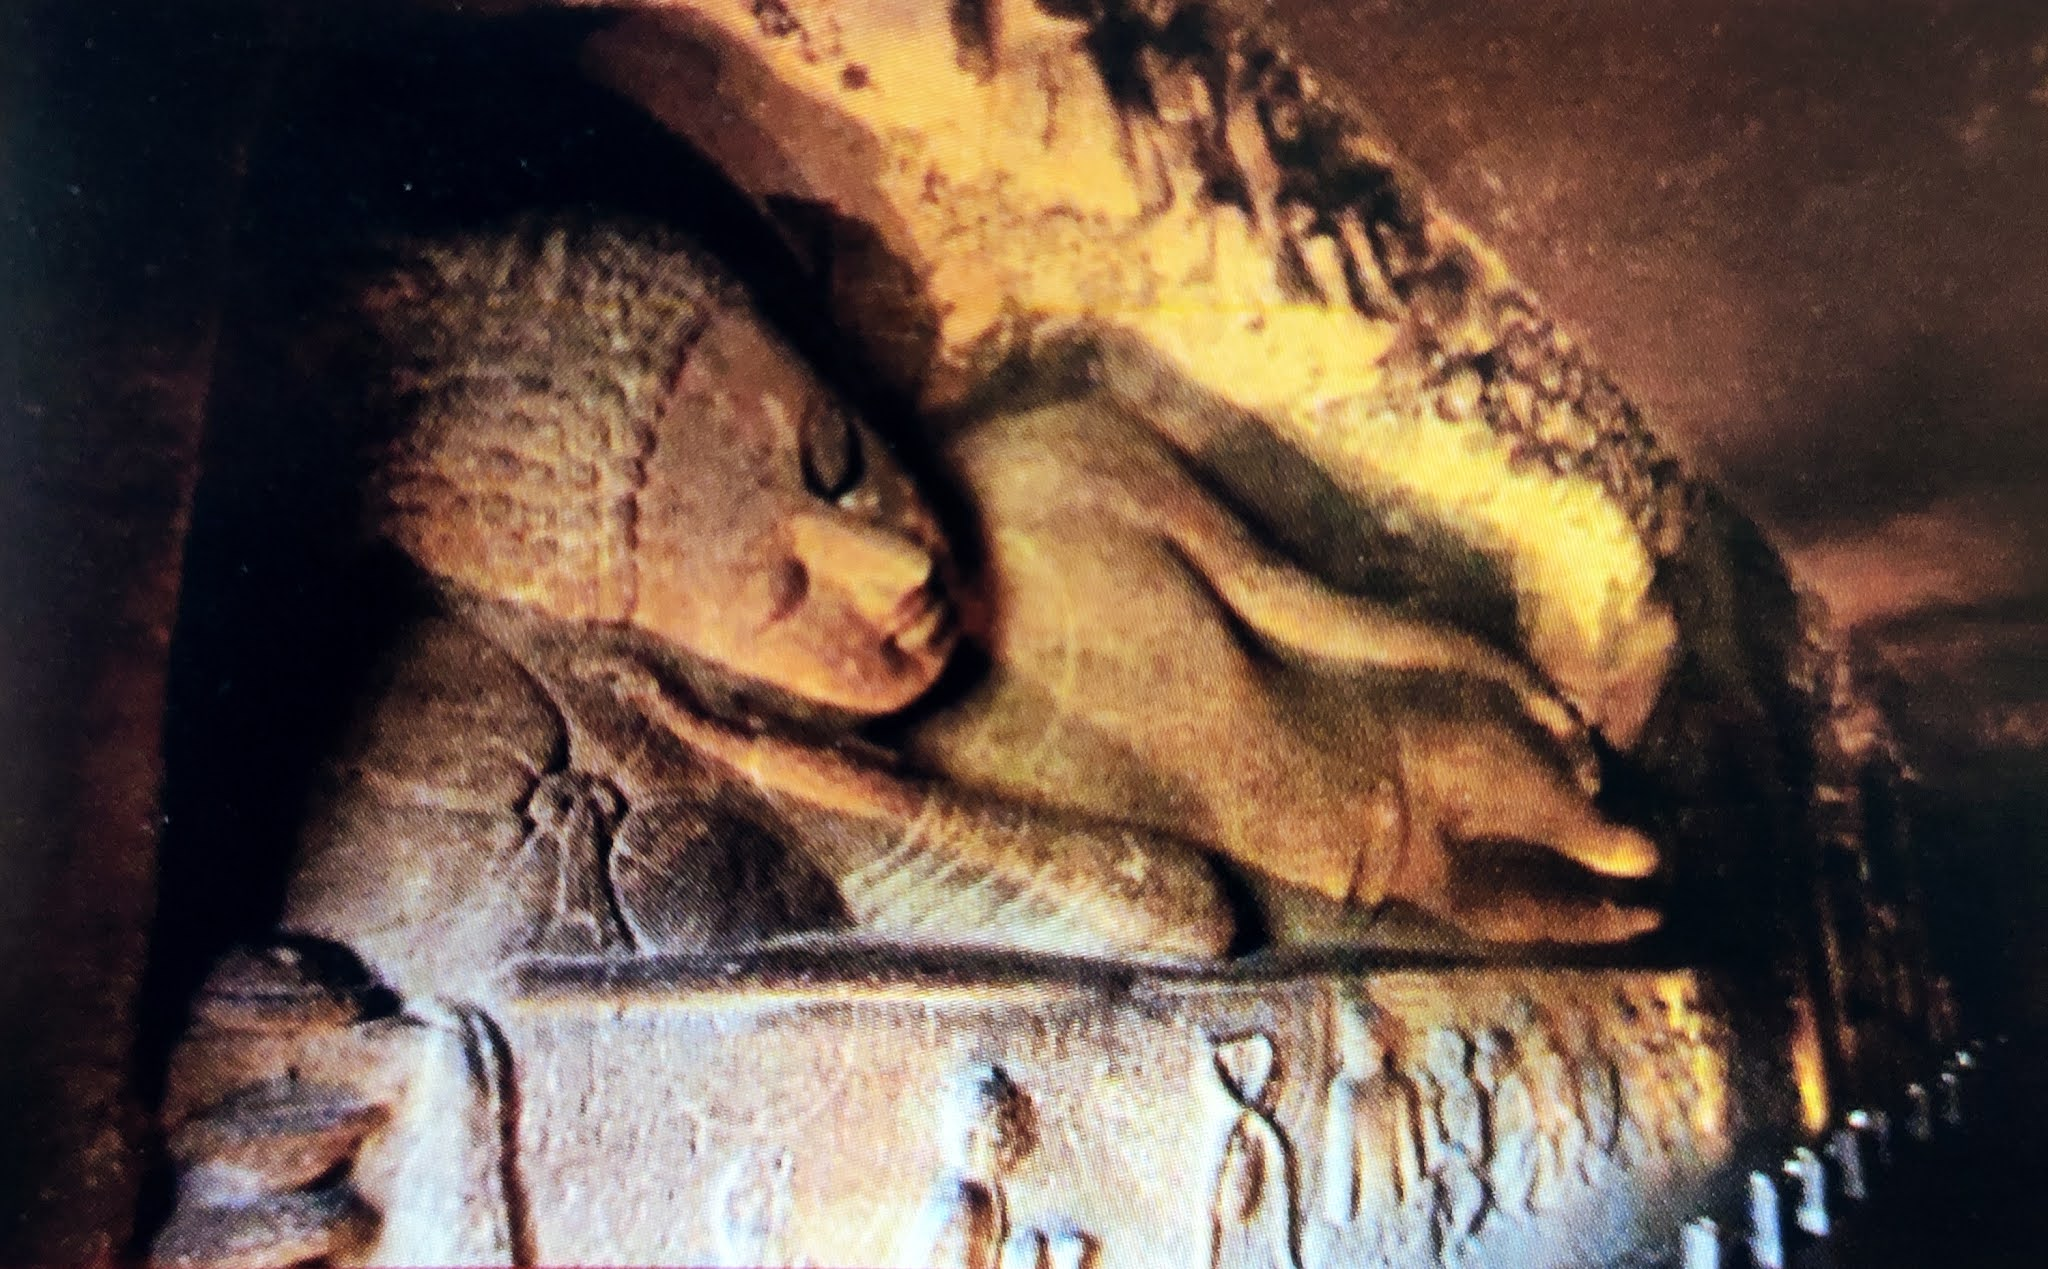 Image contains inside image of ajanta caves